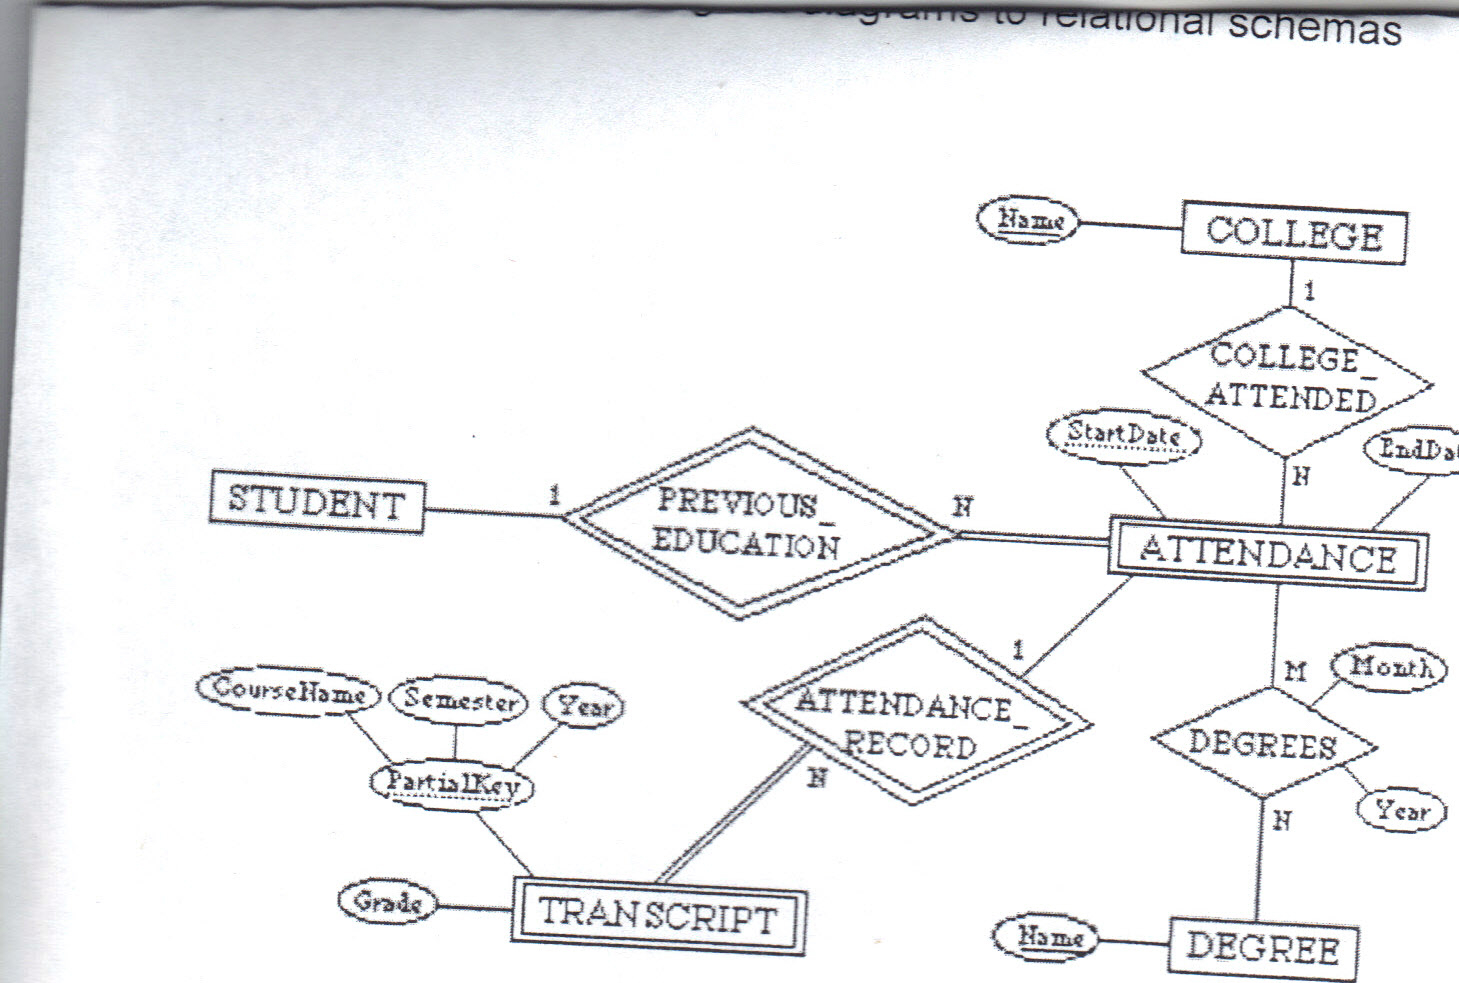 Solved: Convert The Following Er Diagram To Relational Sch intended for Er Diagram To Relational Schema